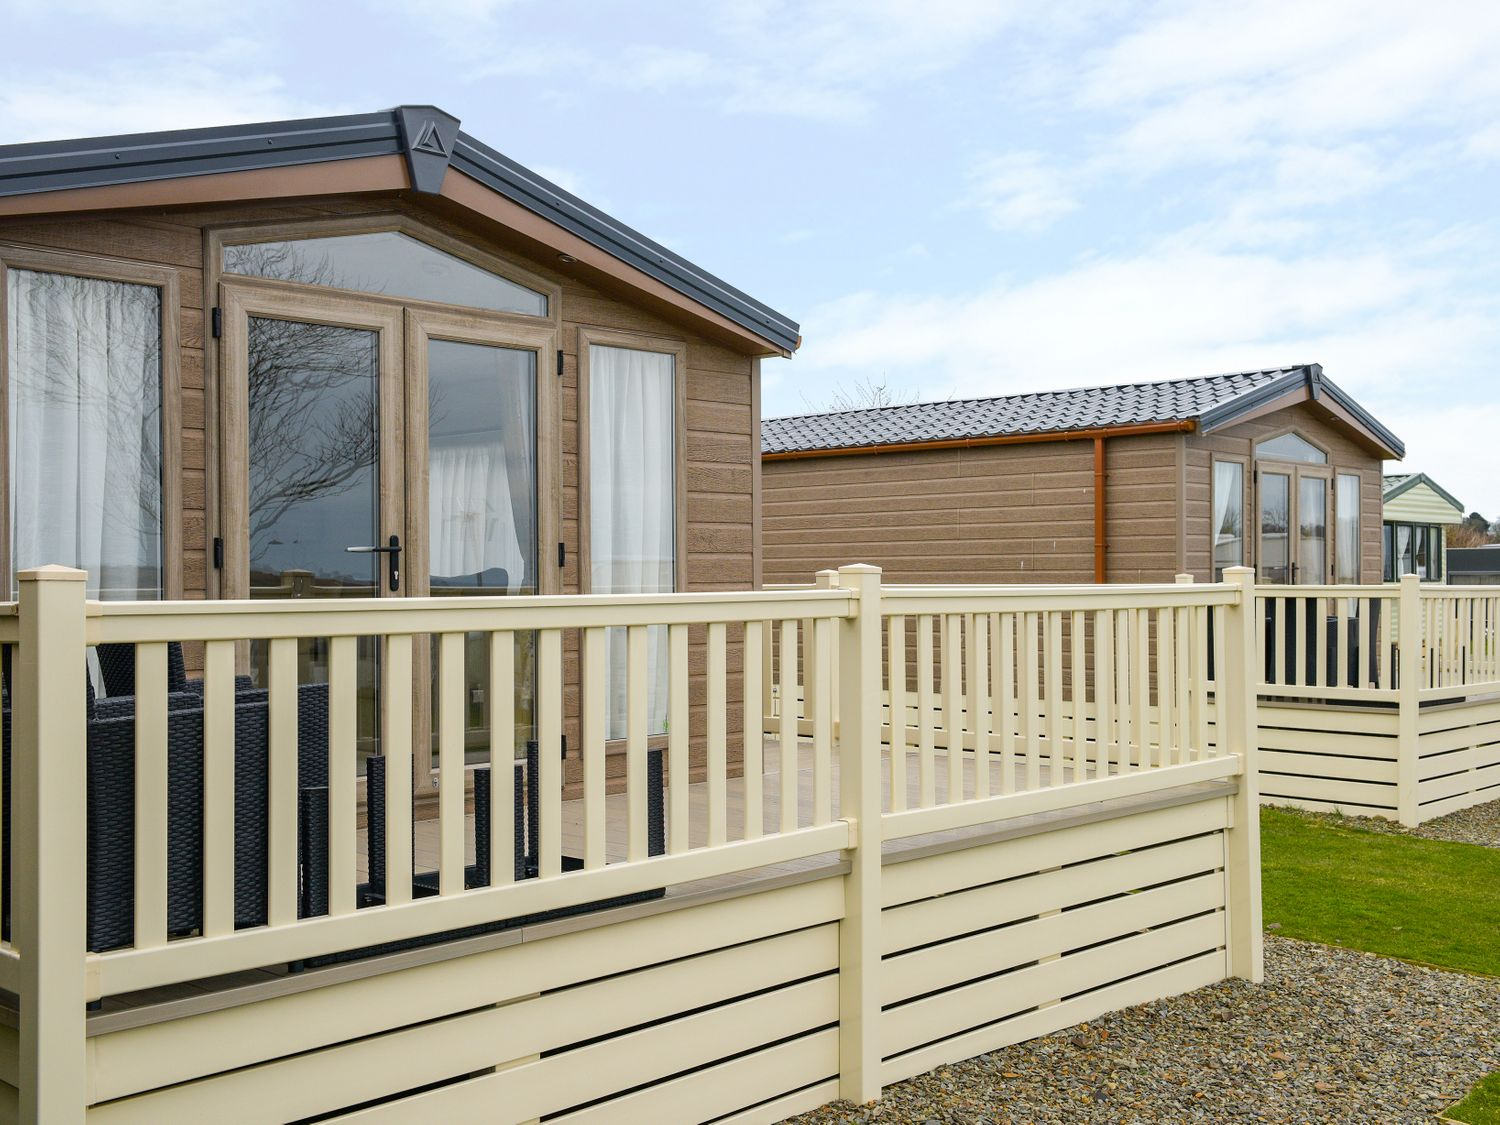 Holiday Home 4 - Cornwall - 959796 - photo 1